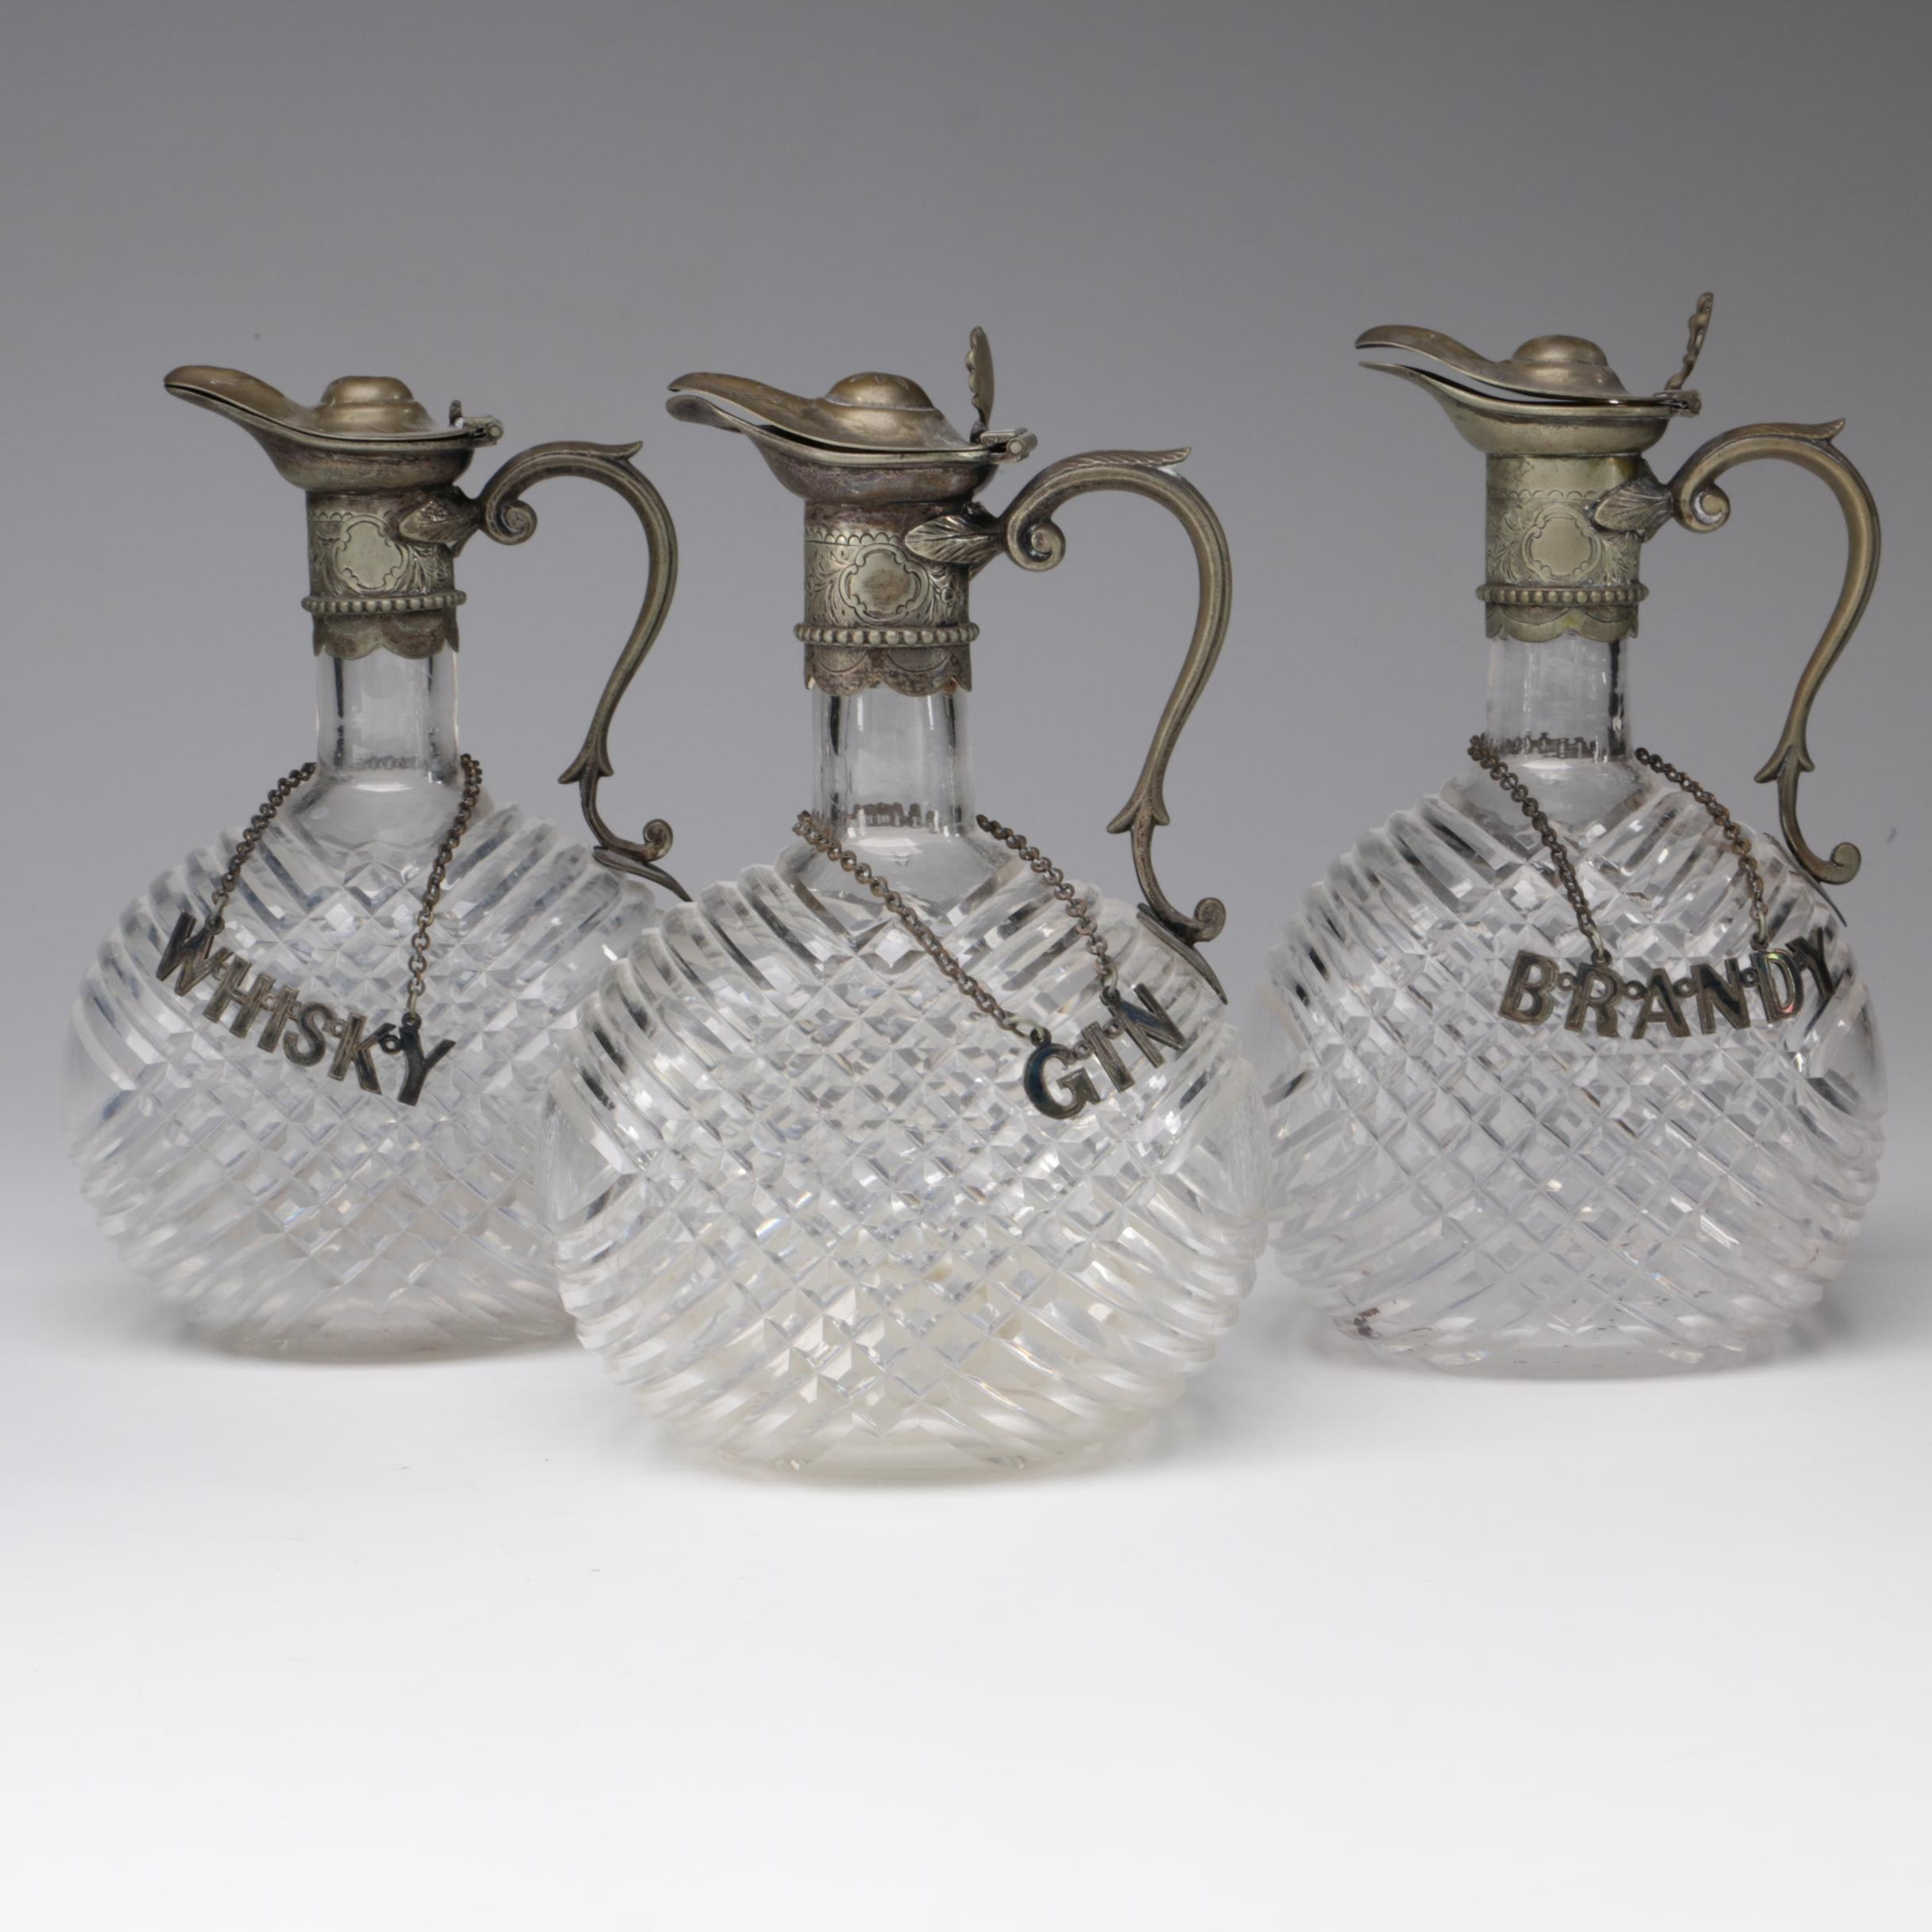 Crystal Claret Decanters with Silver Plate Spouts and Liquor Tags